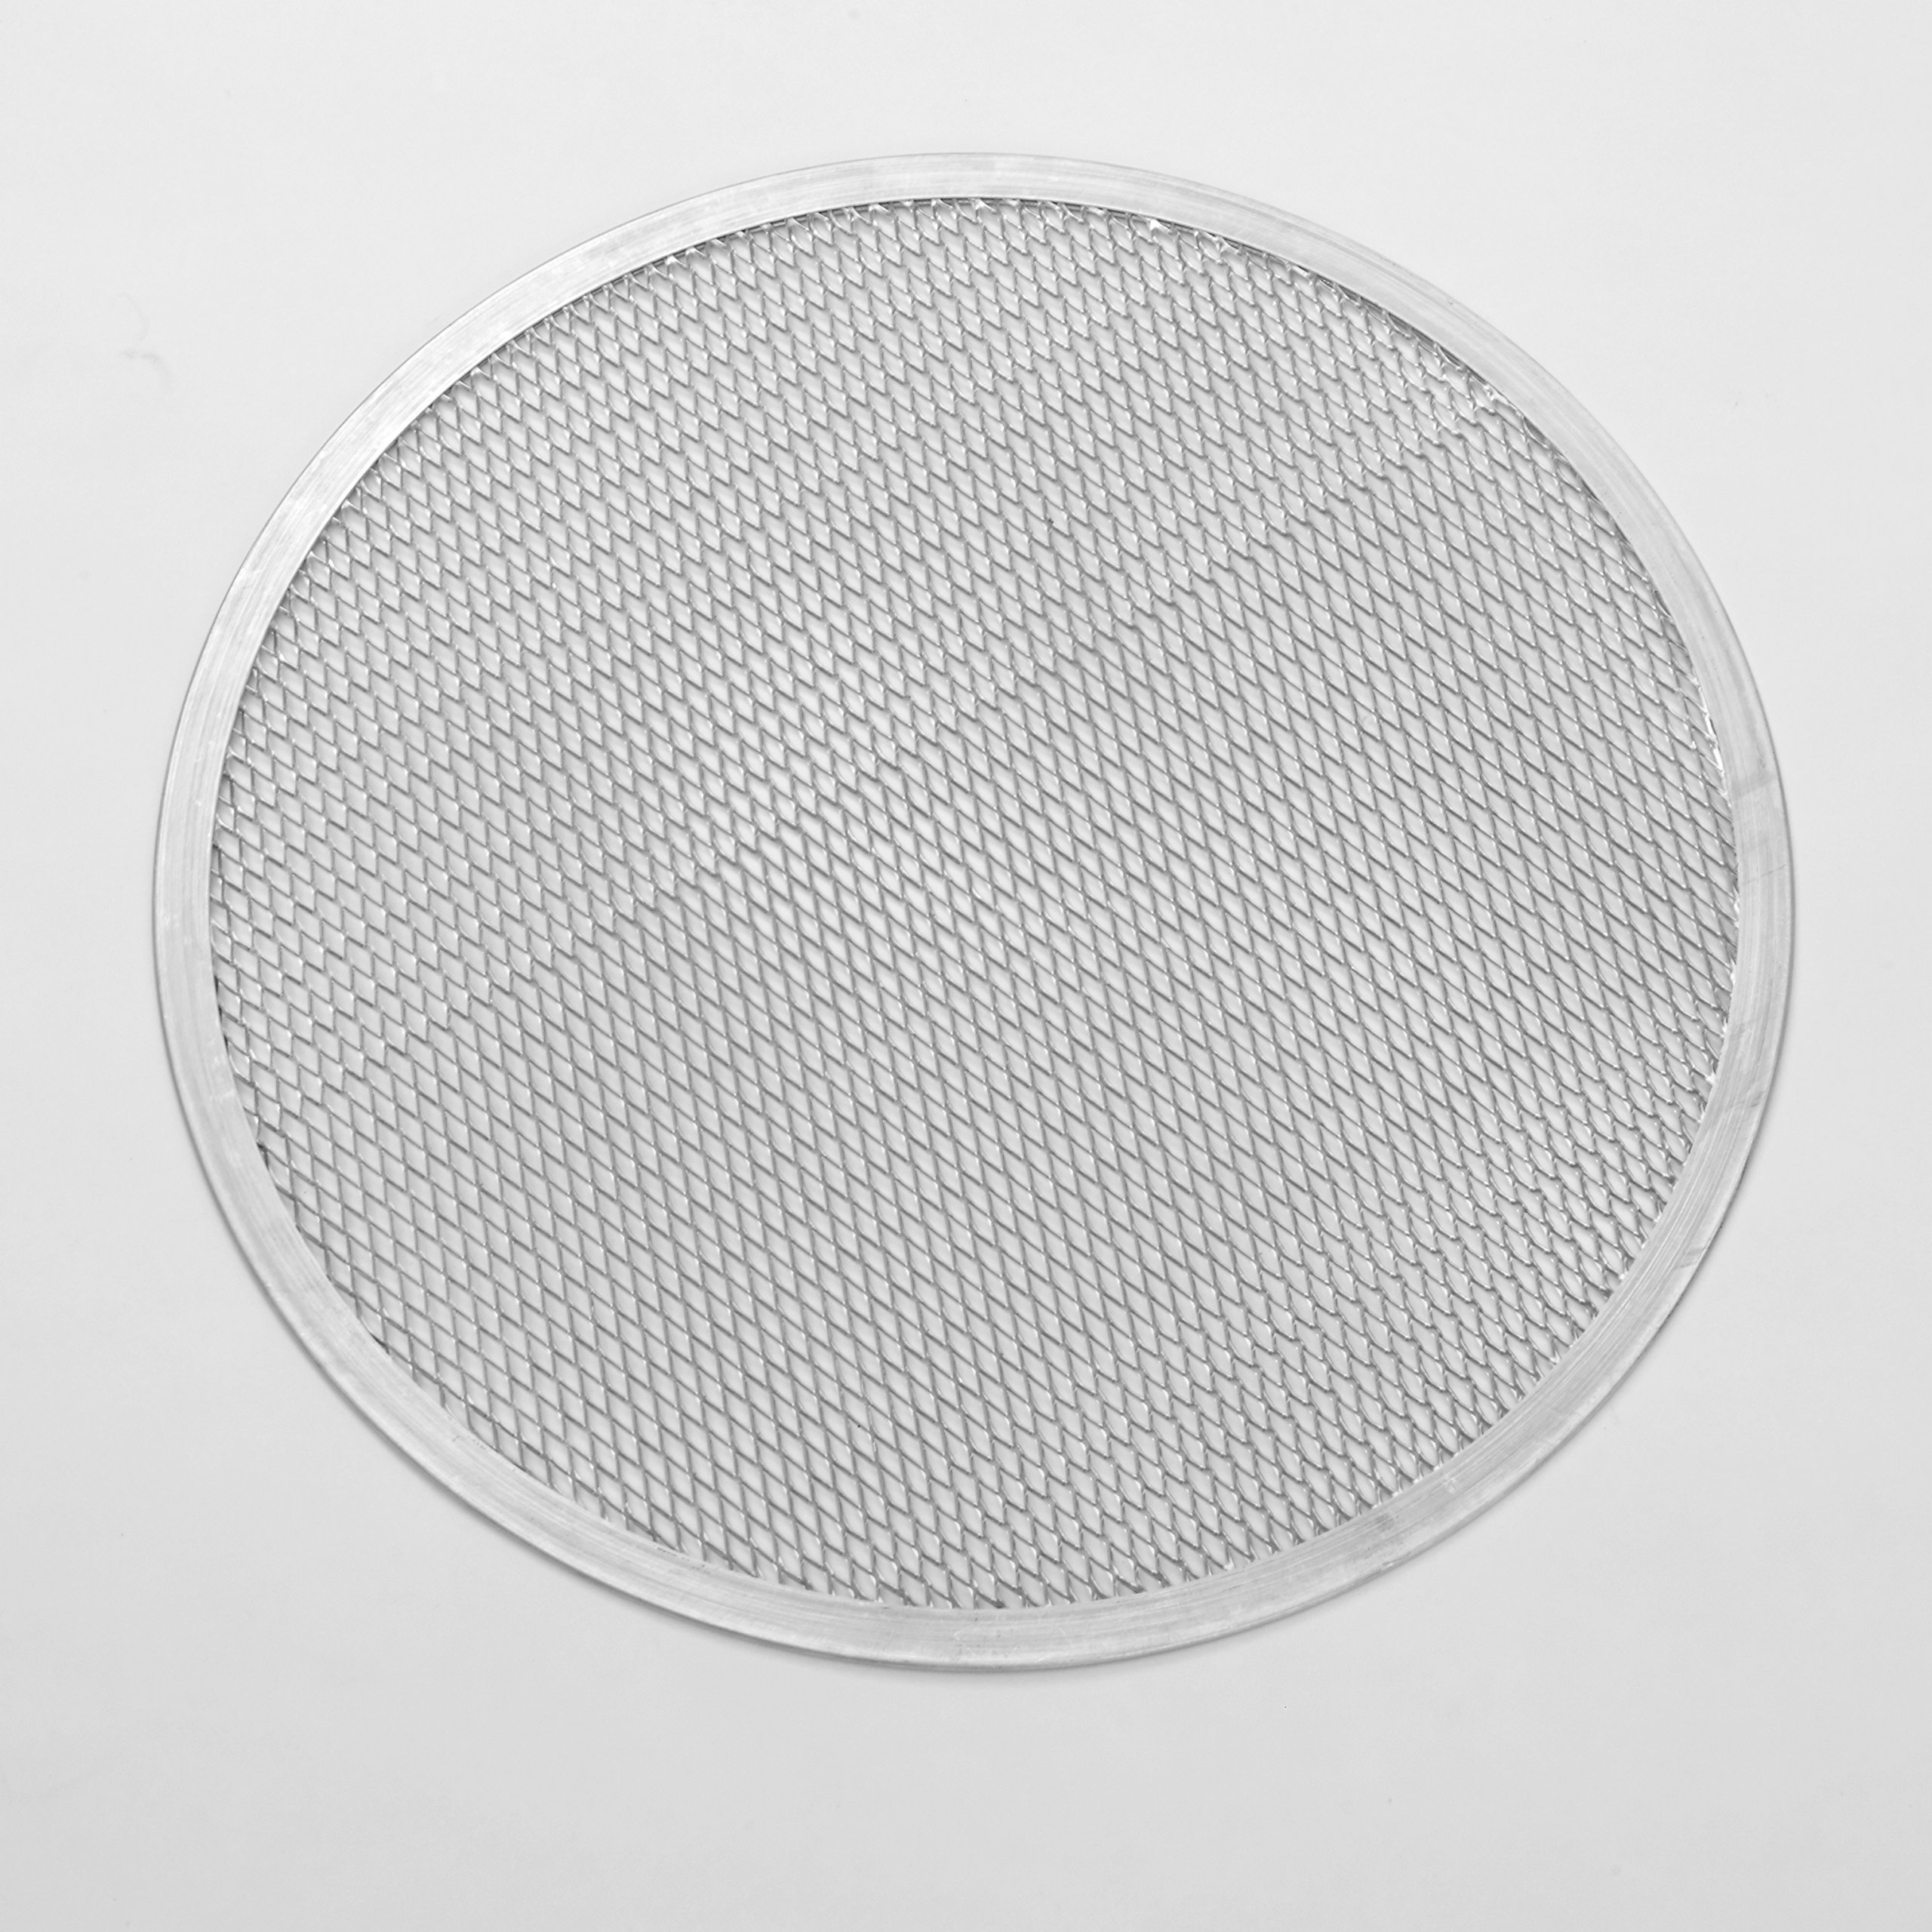 American Metalcraft 18728 Heavy-Duty Expanded Aluminum Pizza Screen, 28-Inches